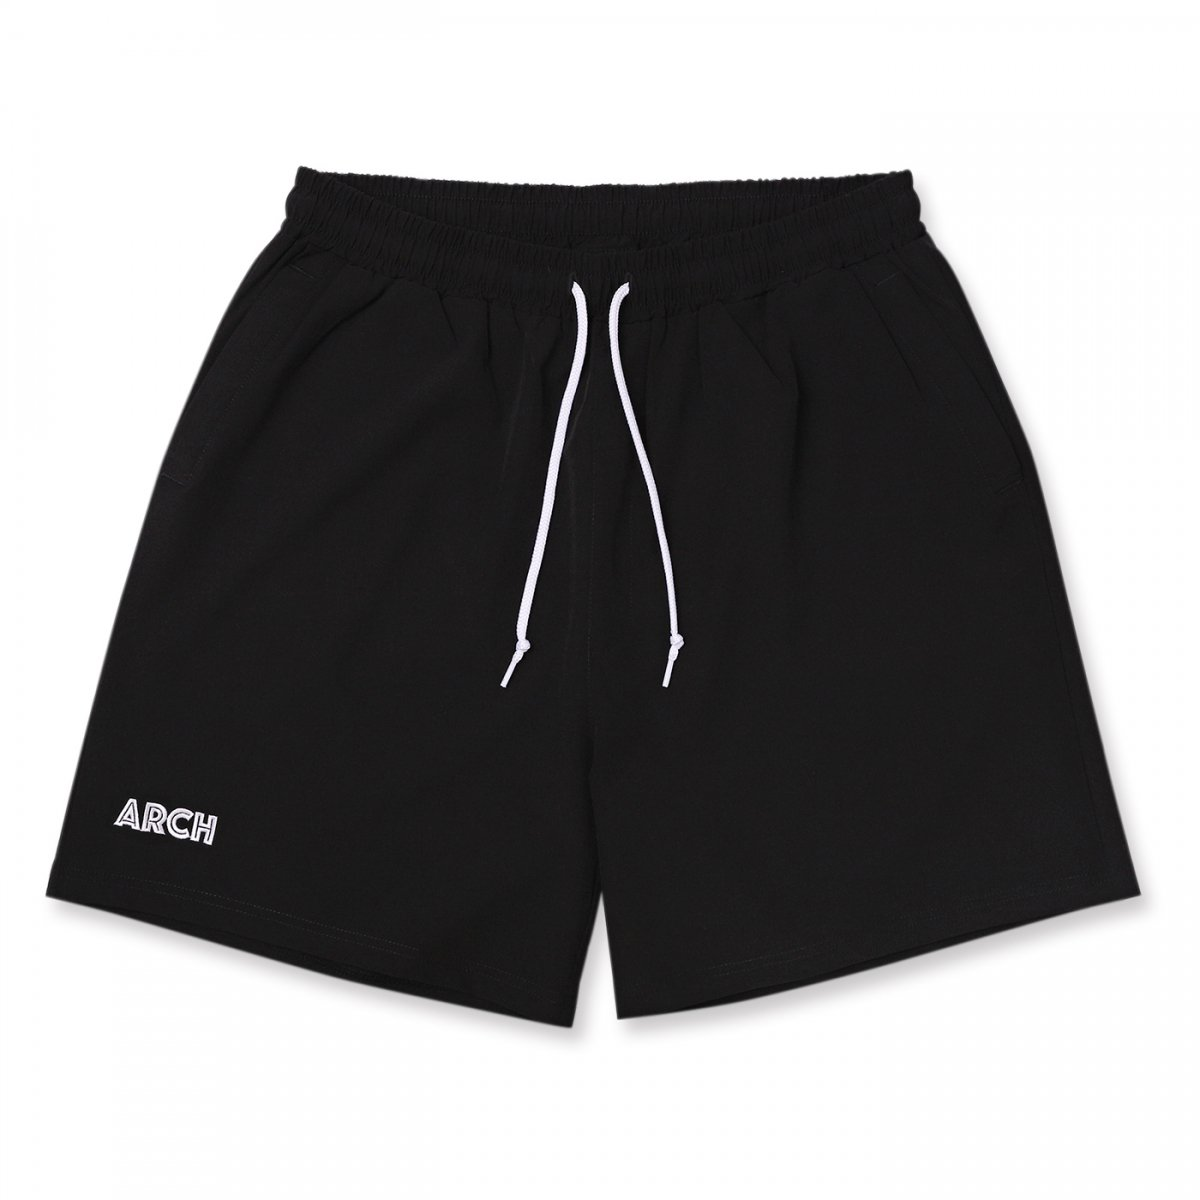 stretch nylon short pants【black】